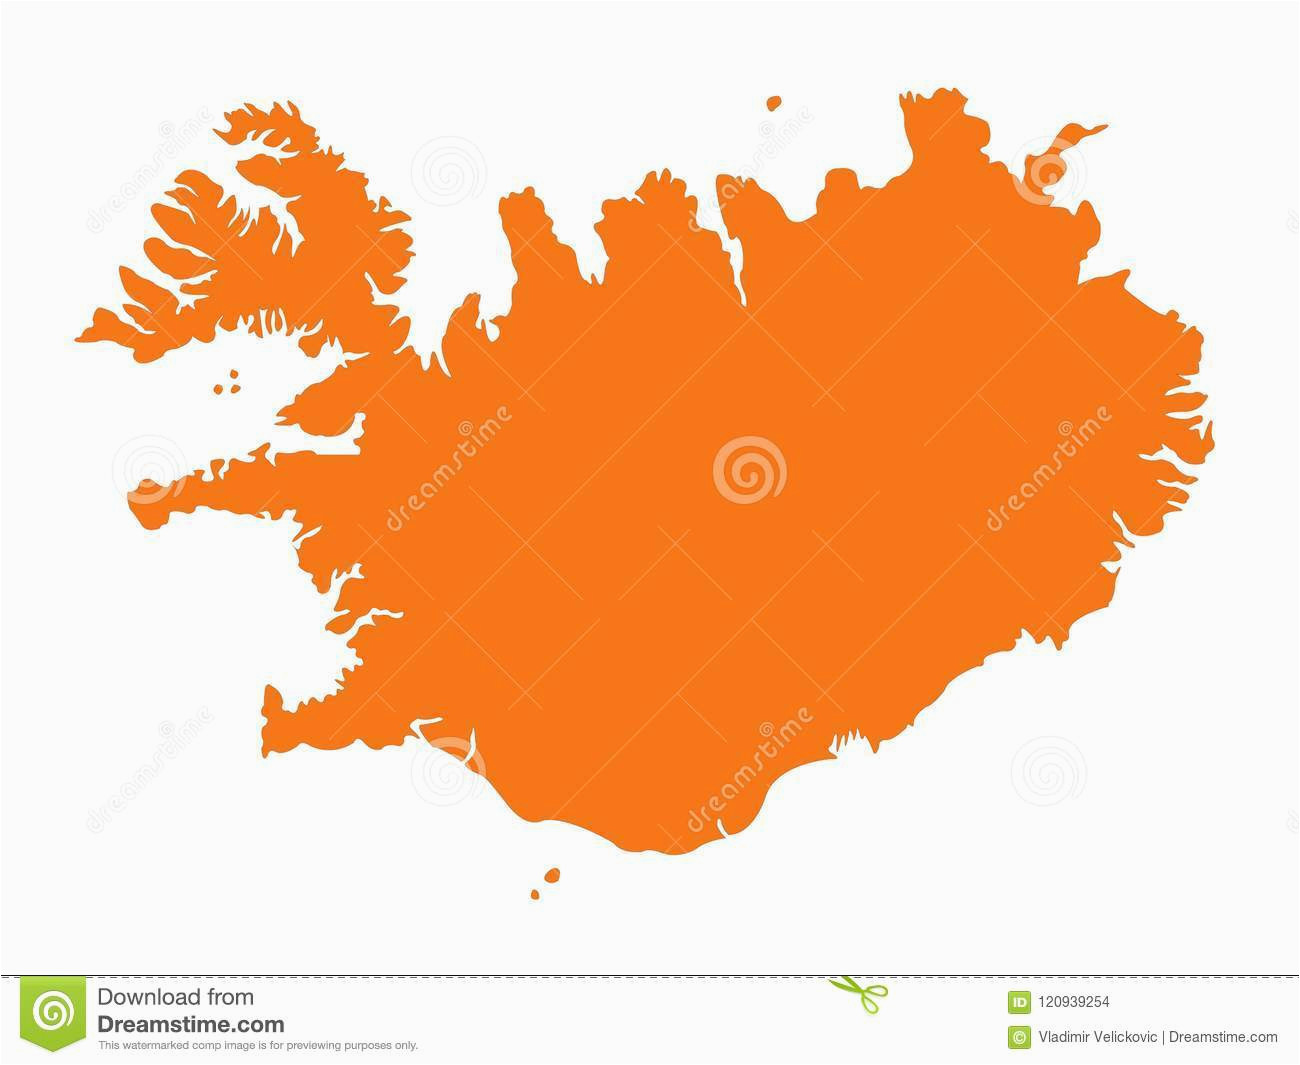 iceland map nordic island country in europe stock vector